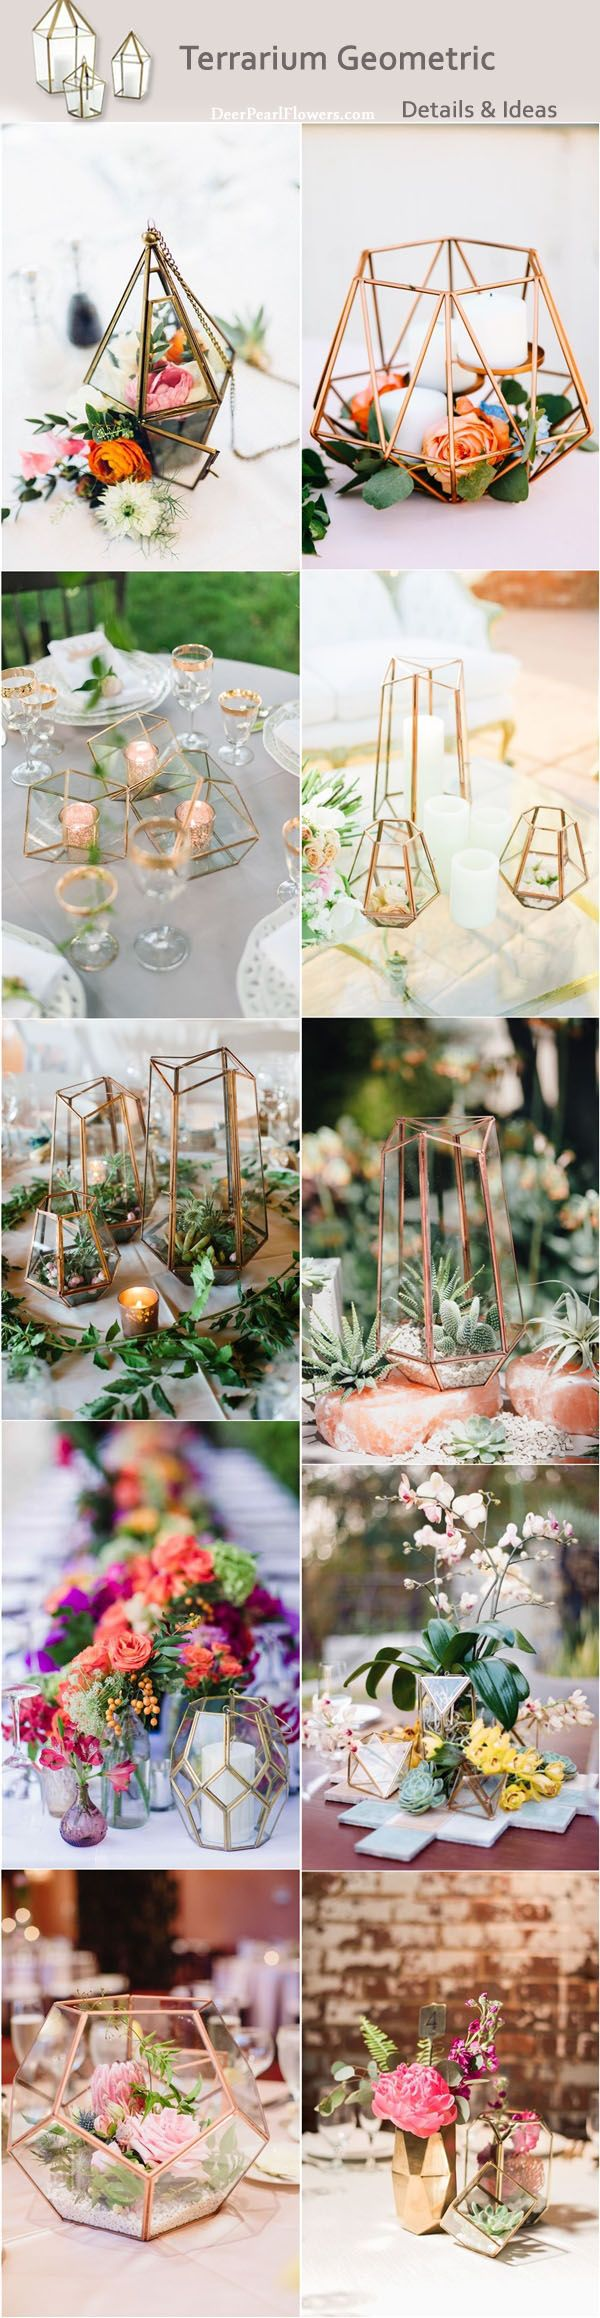 Modern wedding ideas - Terrarium geometric wedding centerpieces